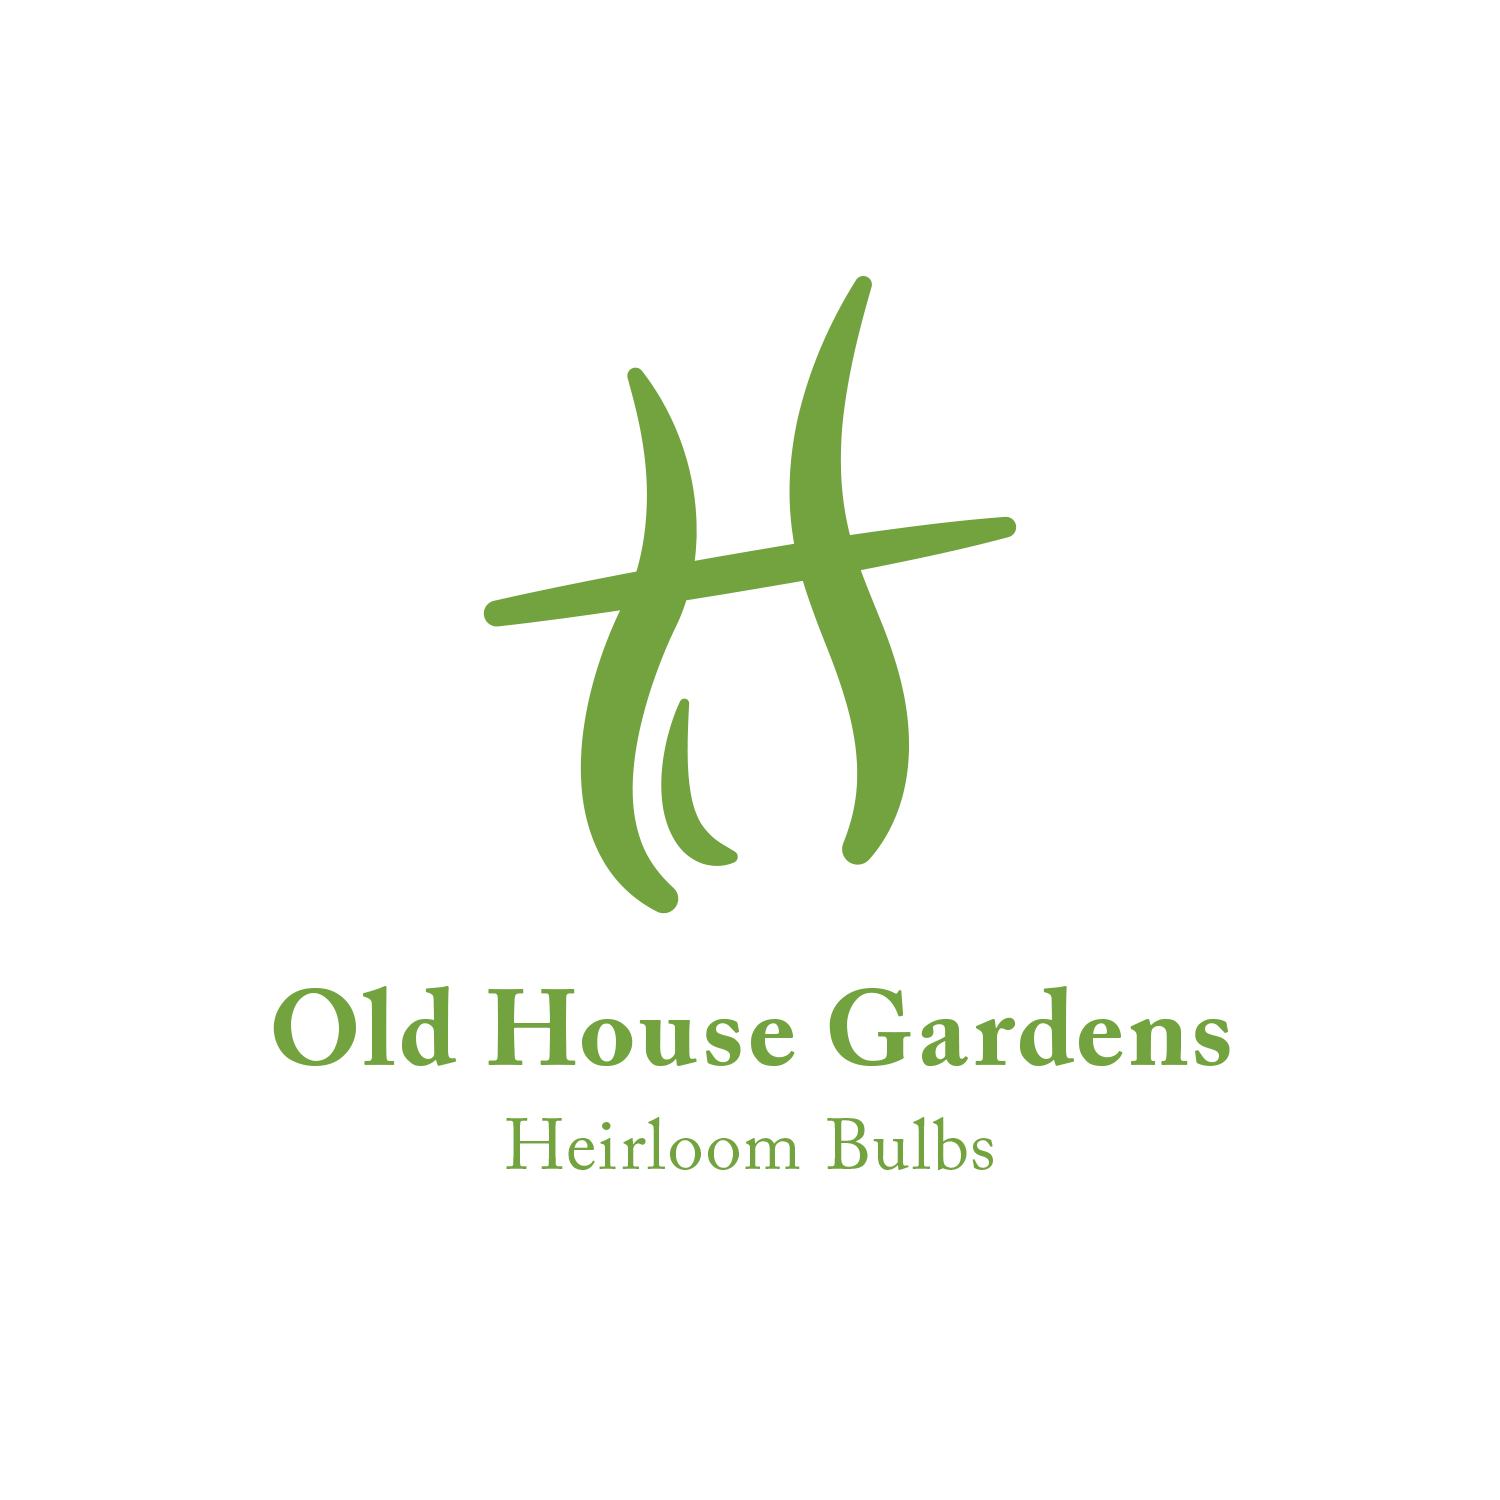 old house gardens  Old House Gardens is a company devoted to the education and preservation of heirloom bulbs. Their goal is to spread the word about the rich history and culture each bulb possesses and being a consumer outlet to purchase these specific at risk bulbs.